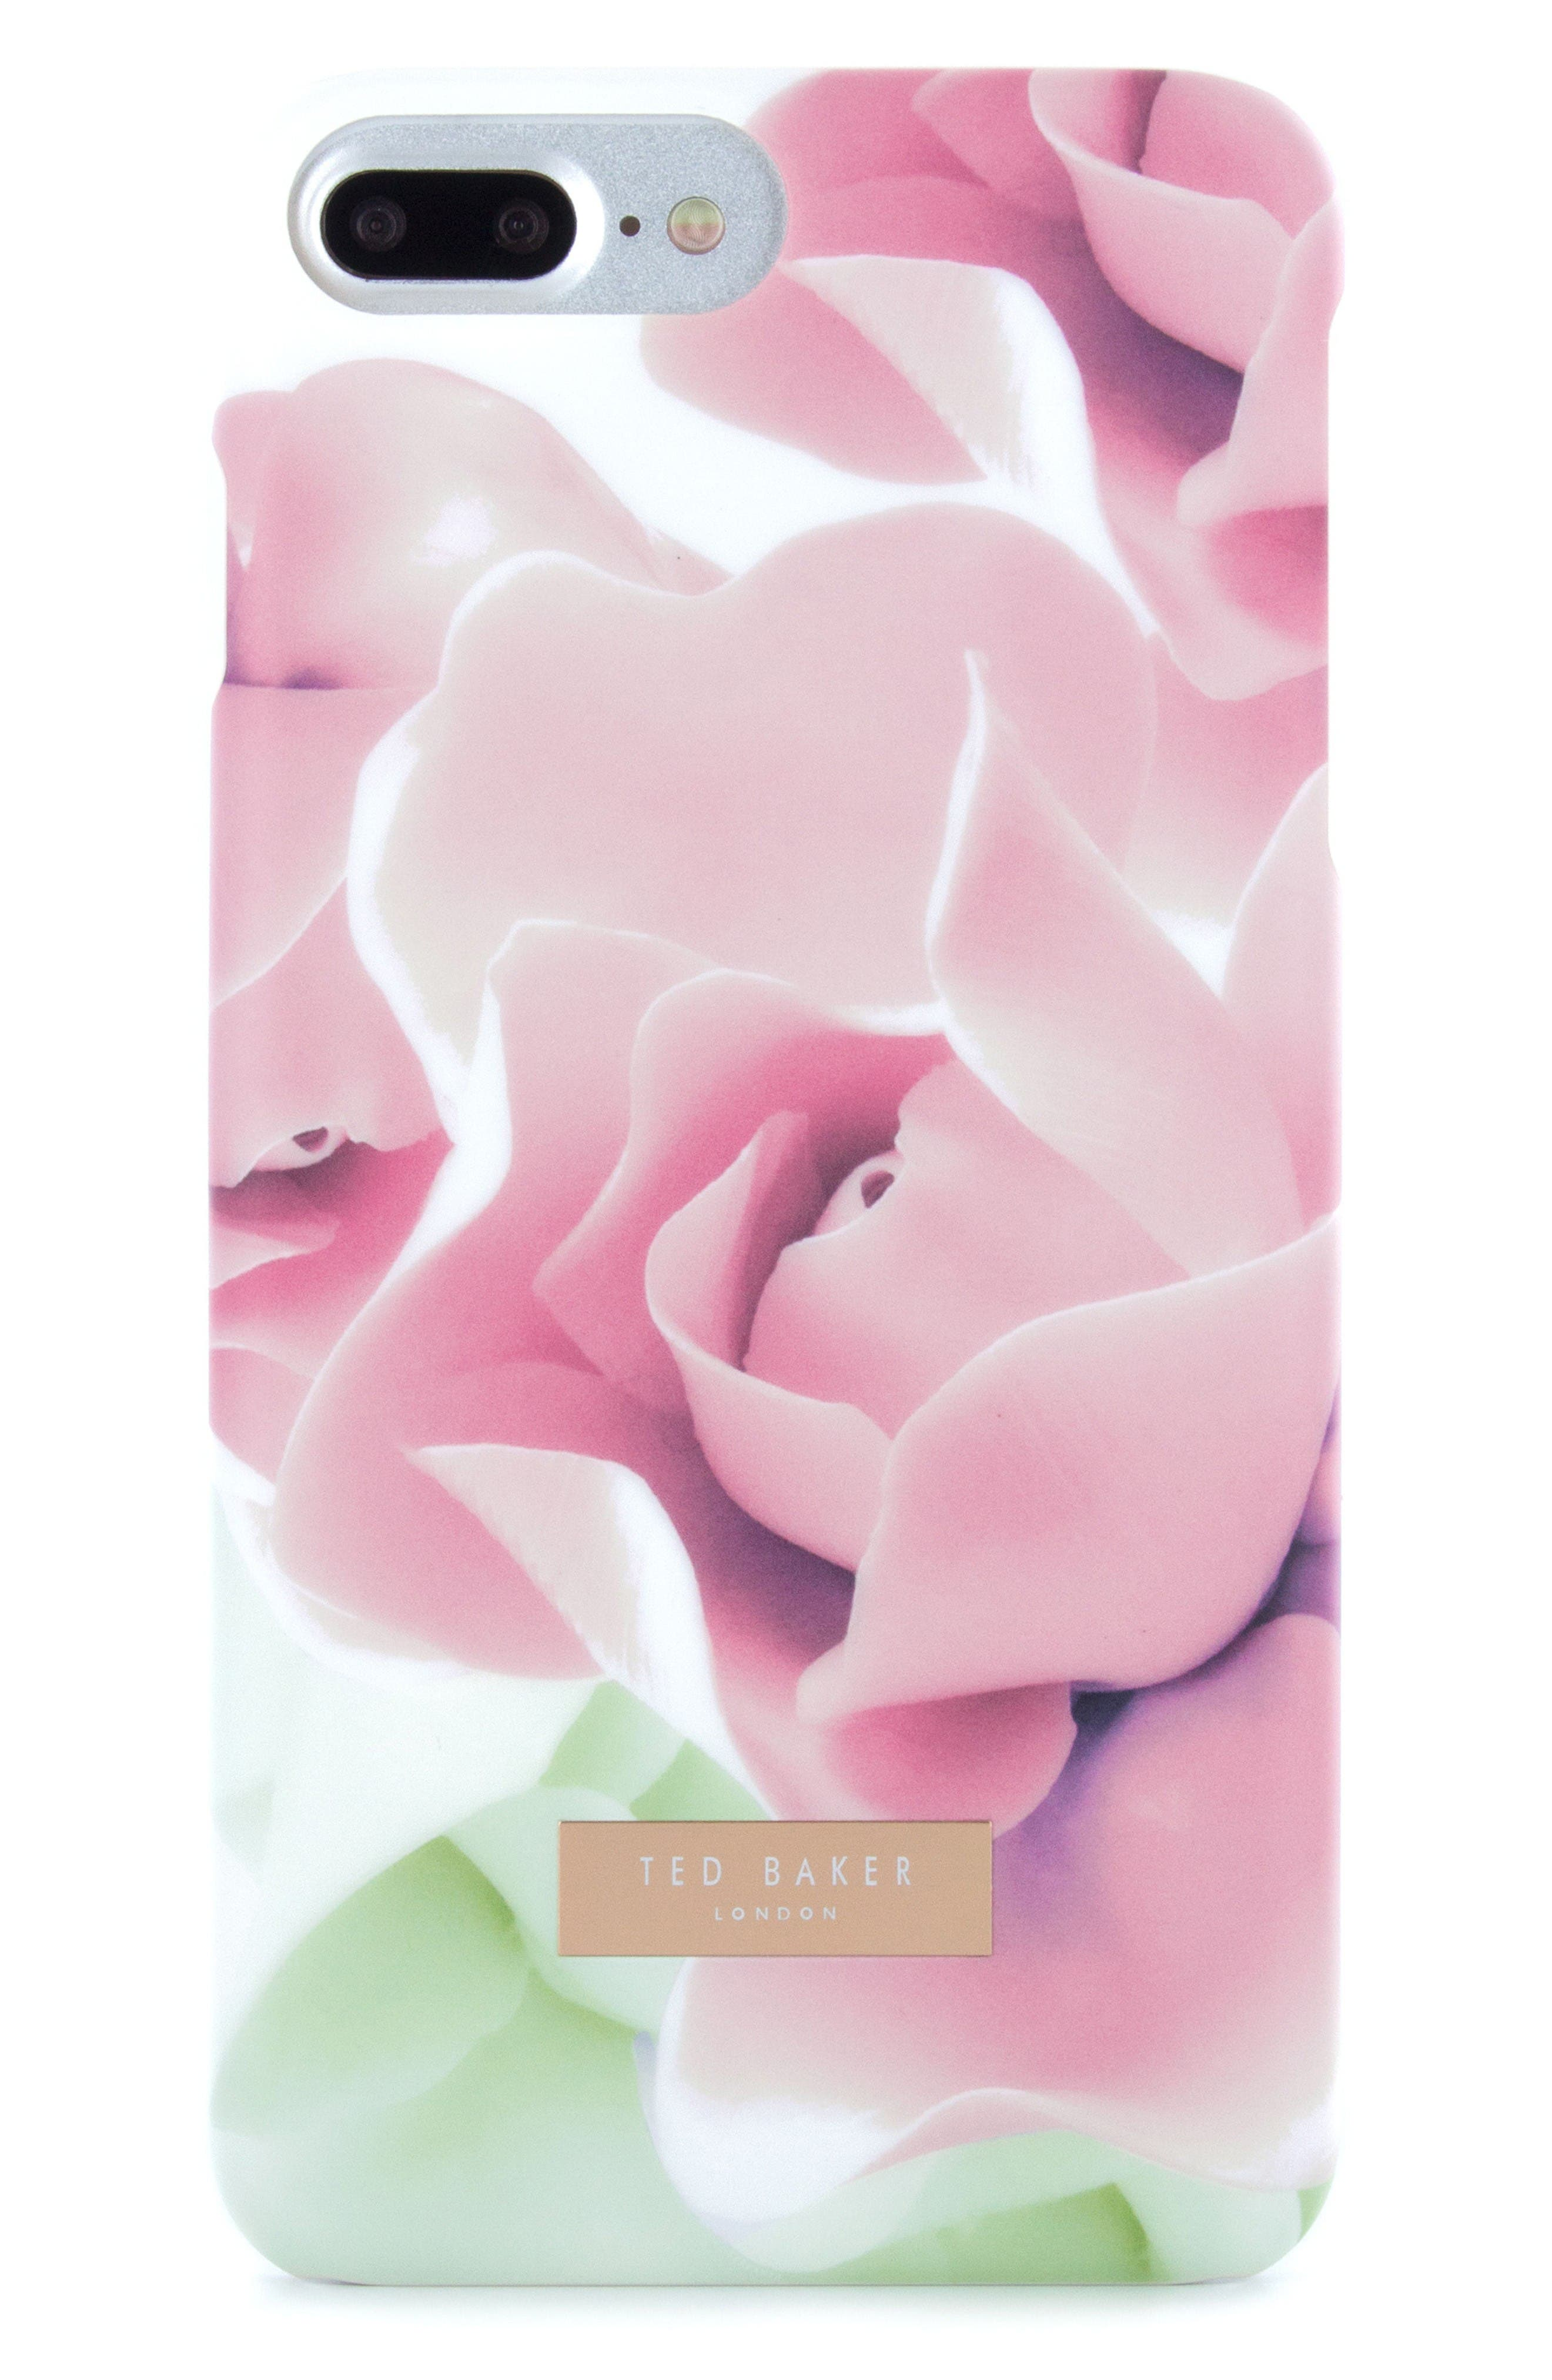 Ted Baker London Anotei Rose iPhone 6/6s/7/8 & 6/6s/7/8 Plus Case